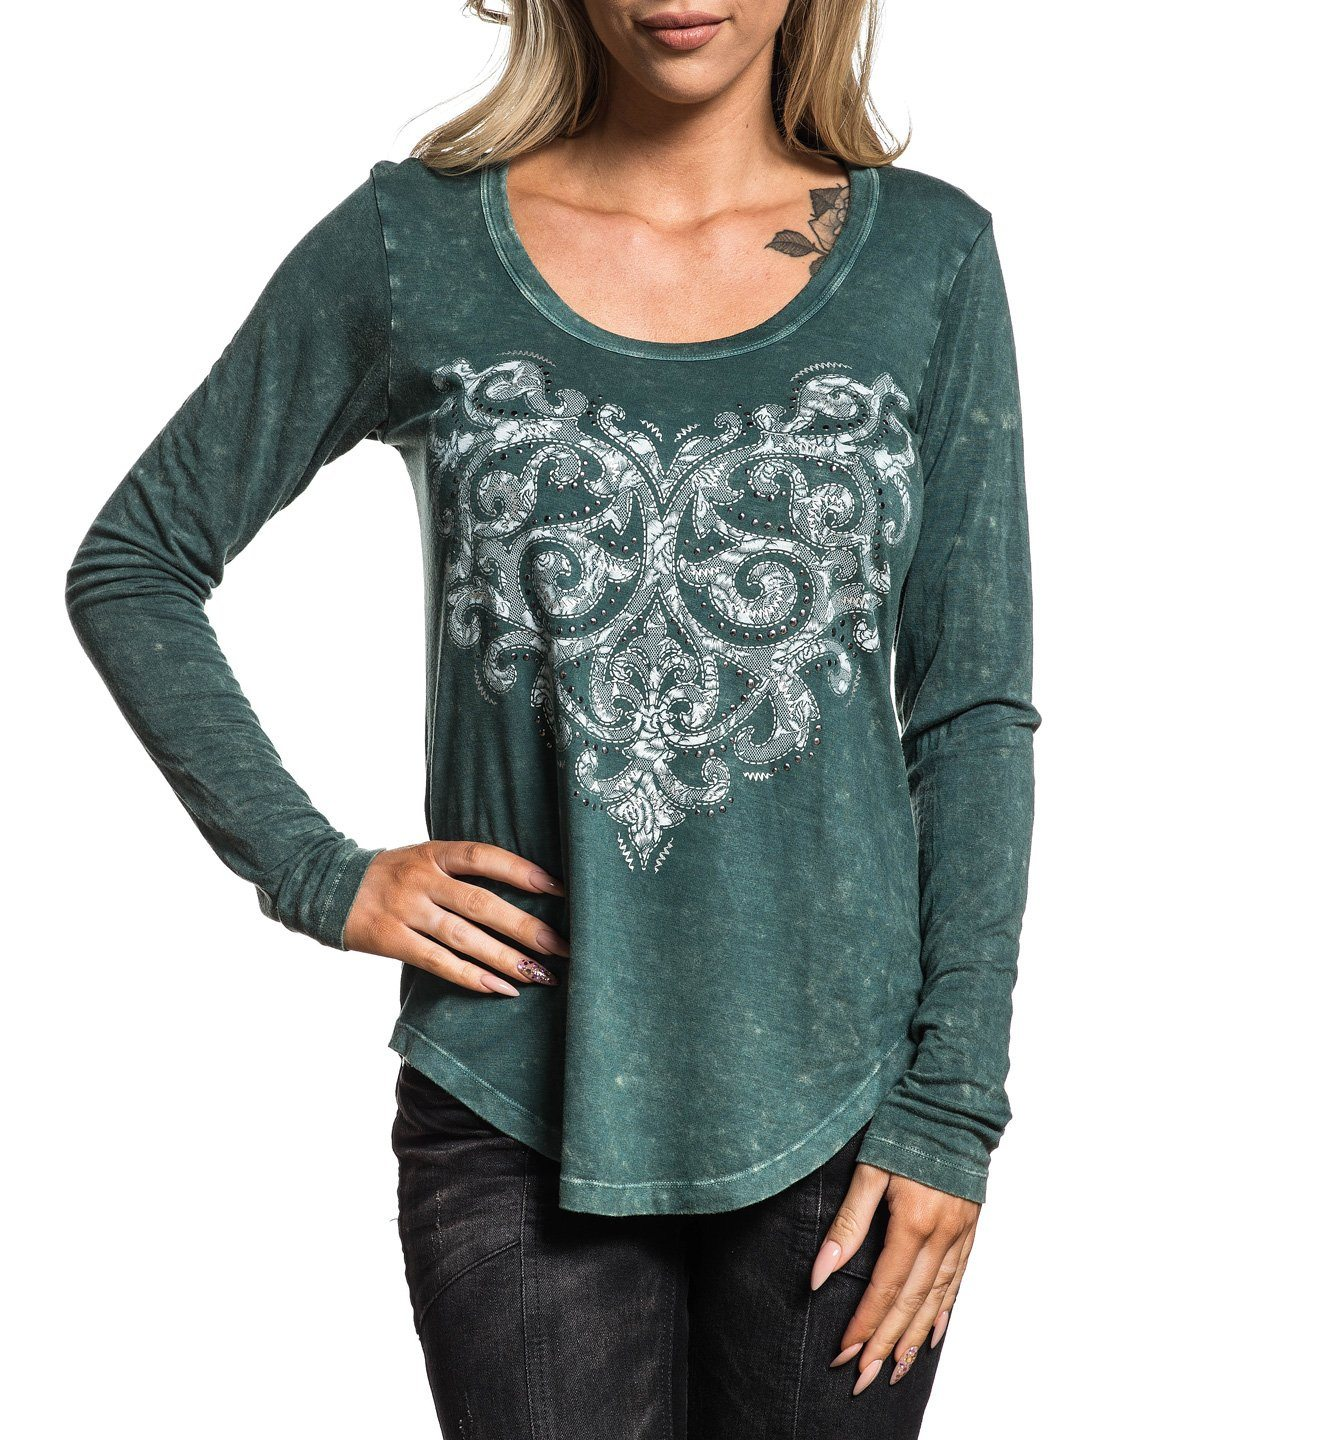 Lighten - Womens Short Sleeve Tees - Affliction Clothing